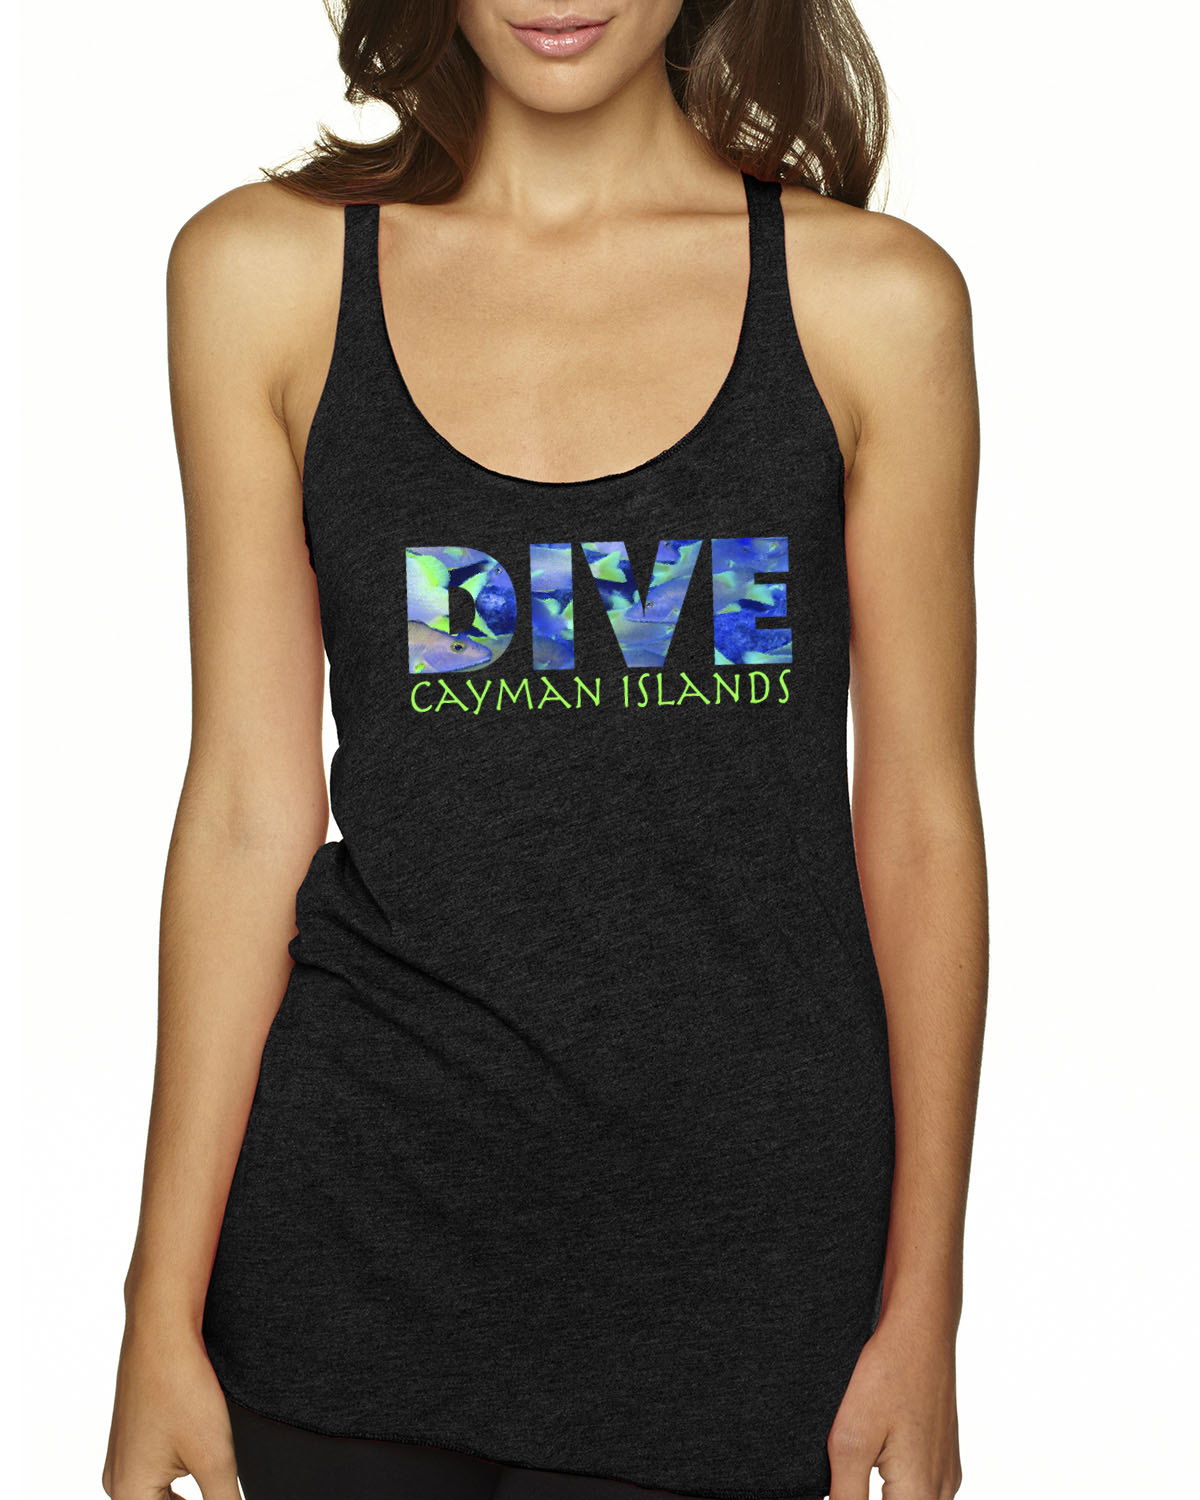 Racer-Back DIVE Cayman Islands Tank Top (Vintage Black)